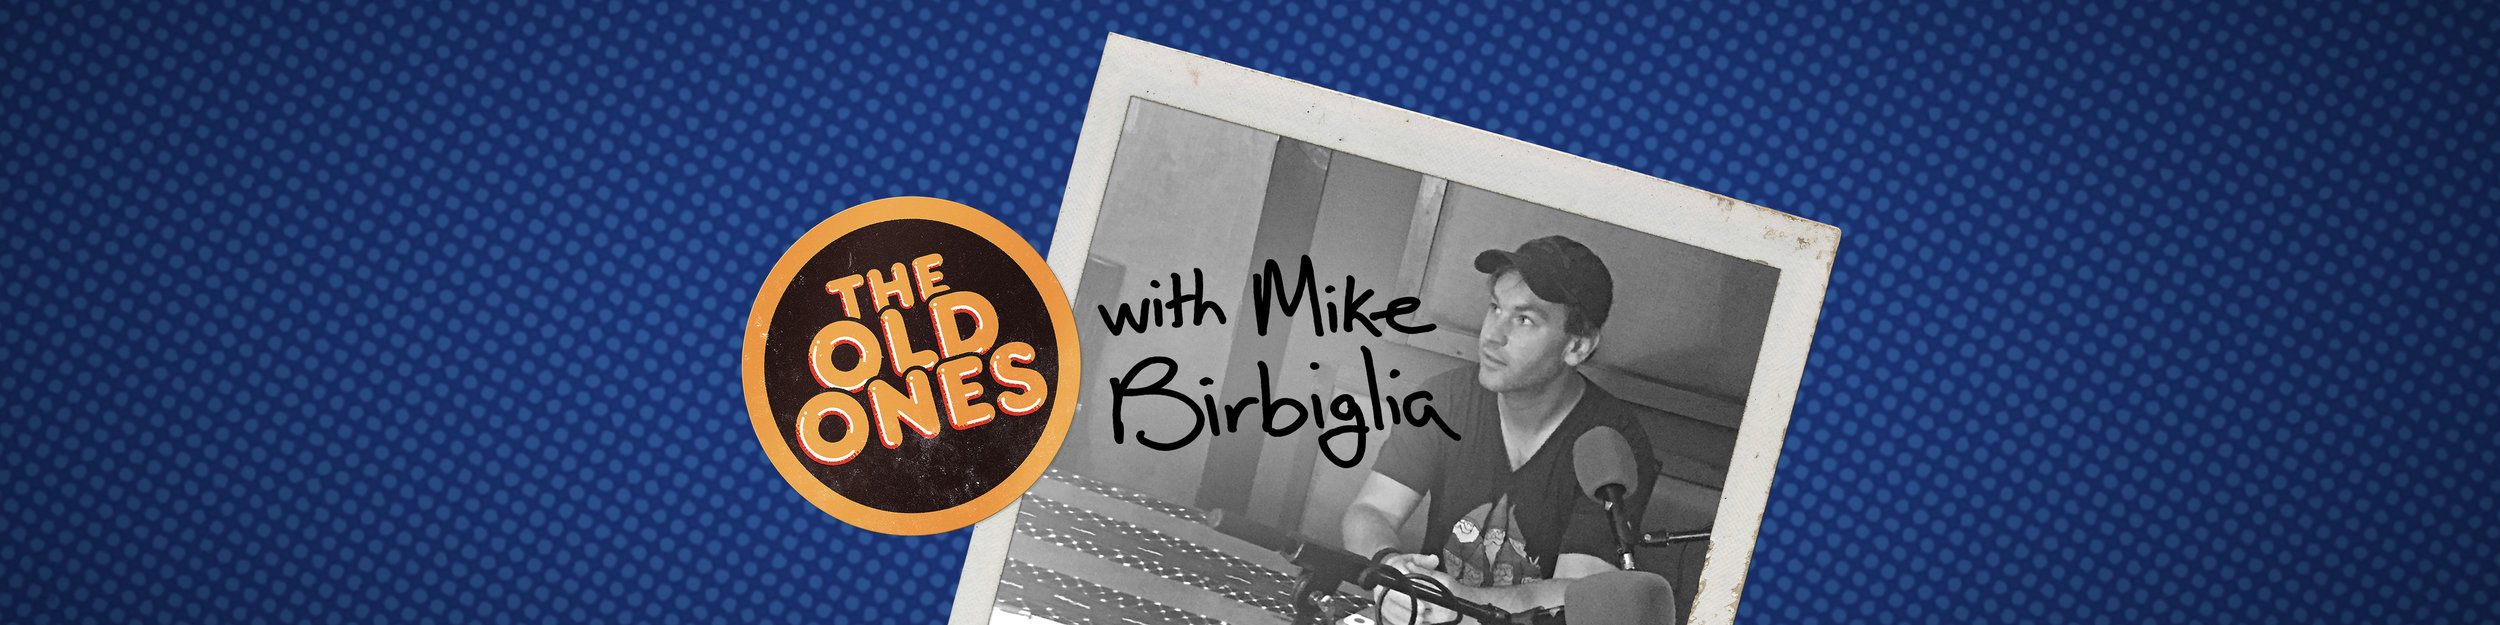 birbigs_oldones_promo3b_dots.jpg